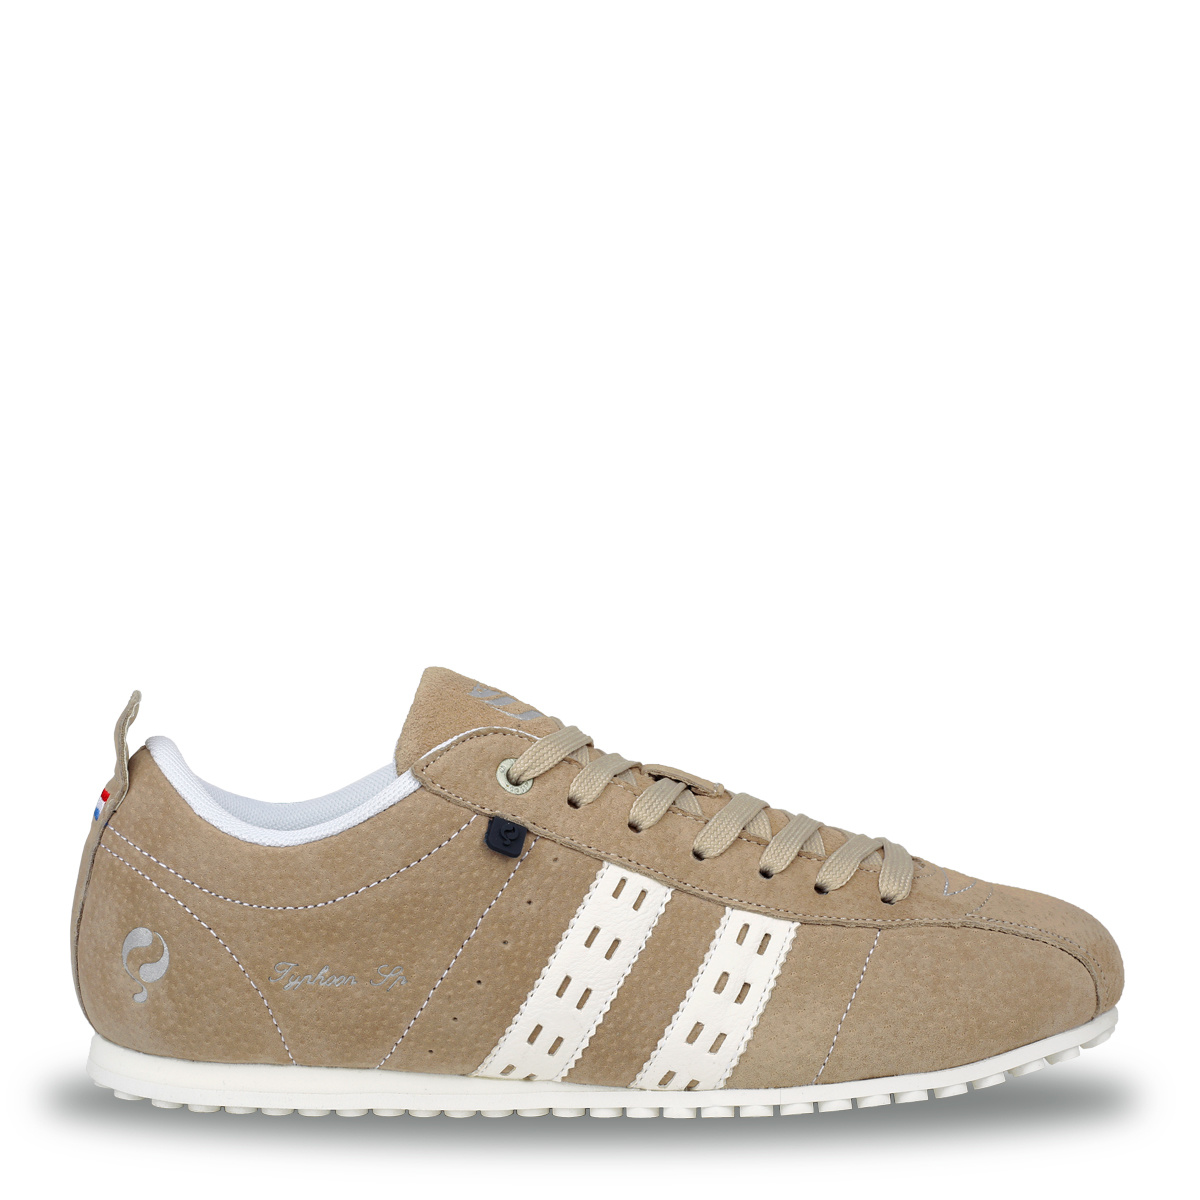 Heren Sneaker Typhoon SP - Taupe/Wit